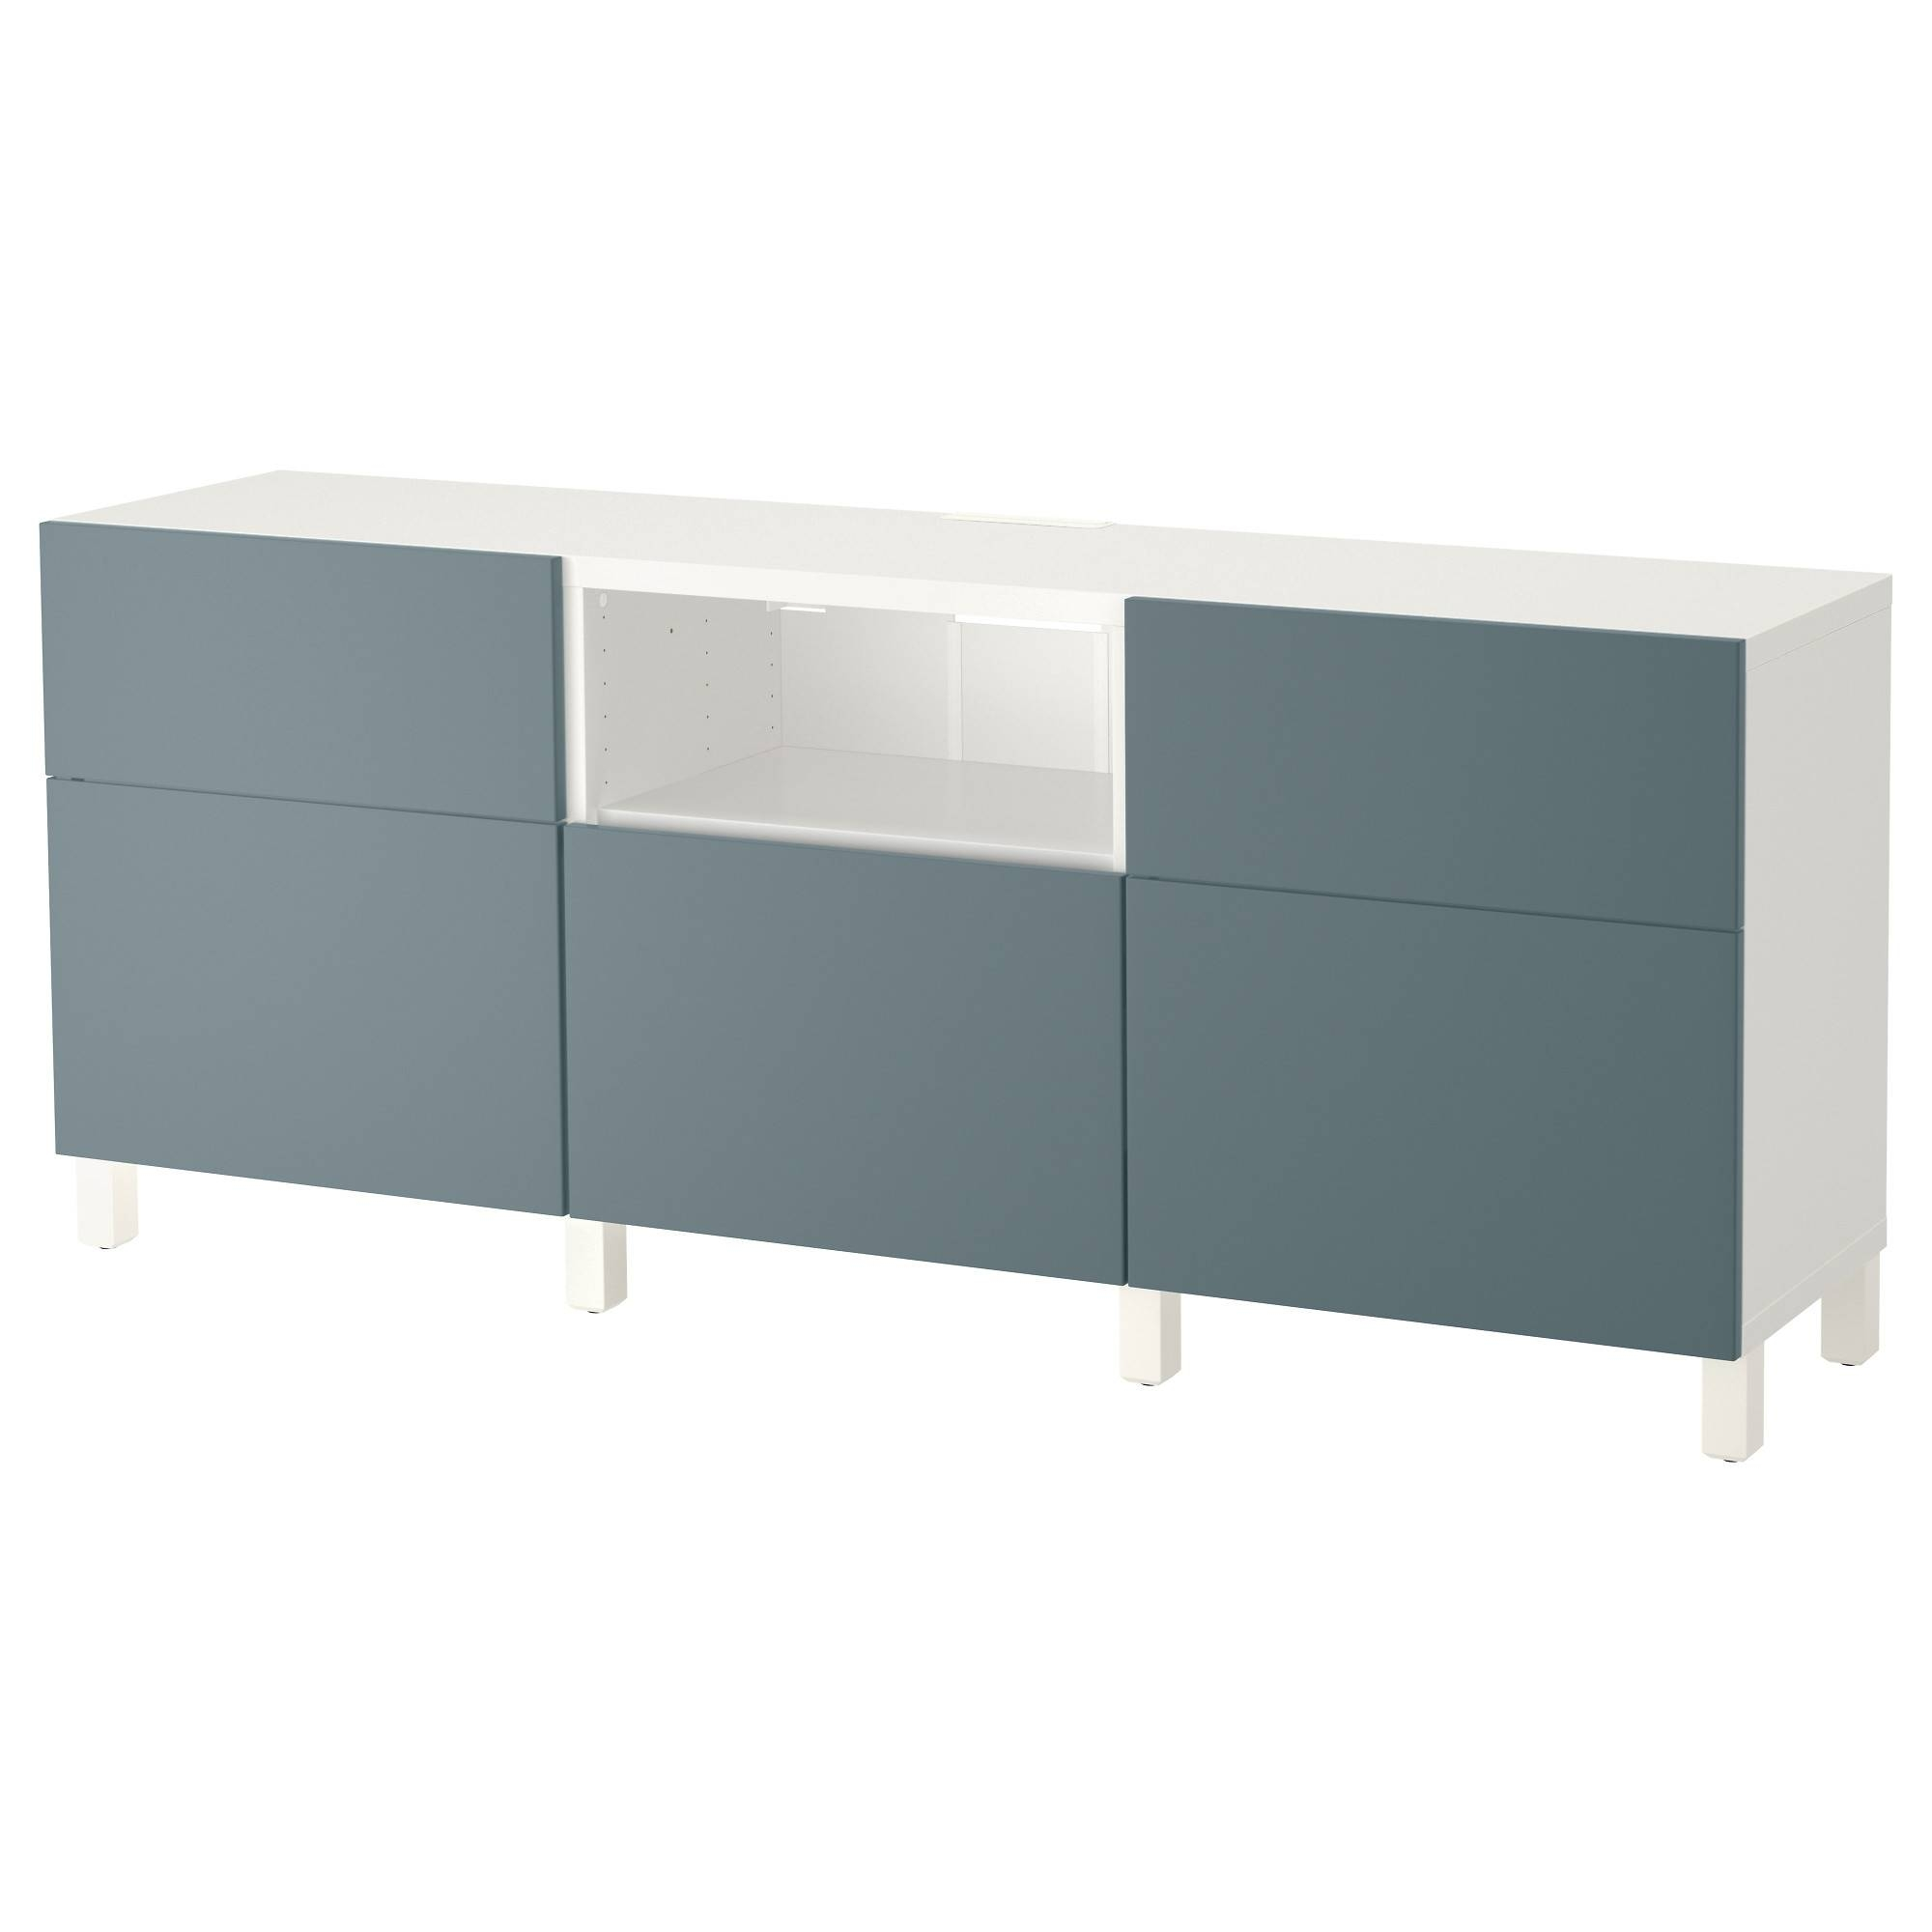 Bestå System - Combinations & Tv Benches - Ikea in Sideboard Units (Image 6 of 30)